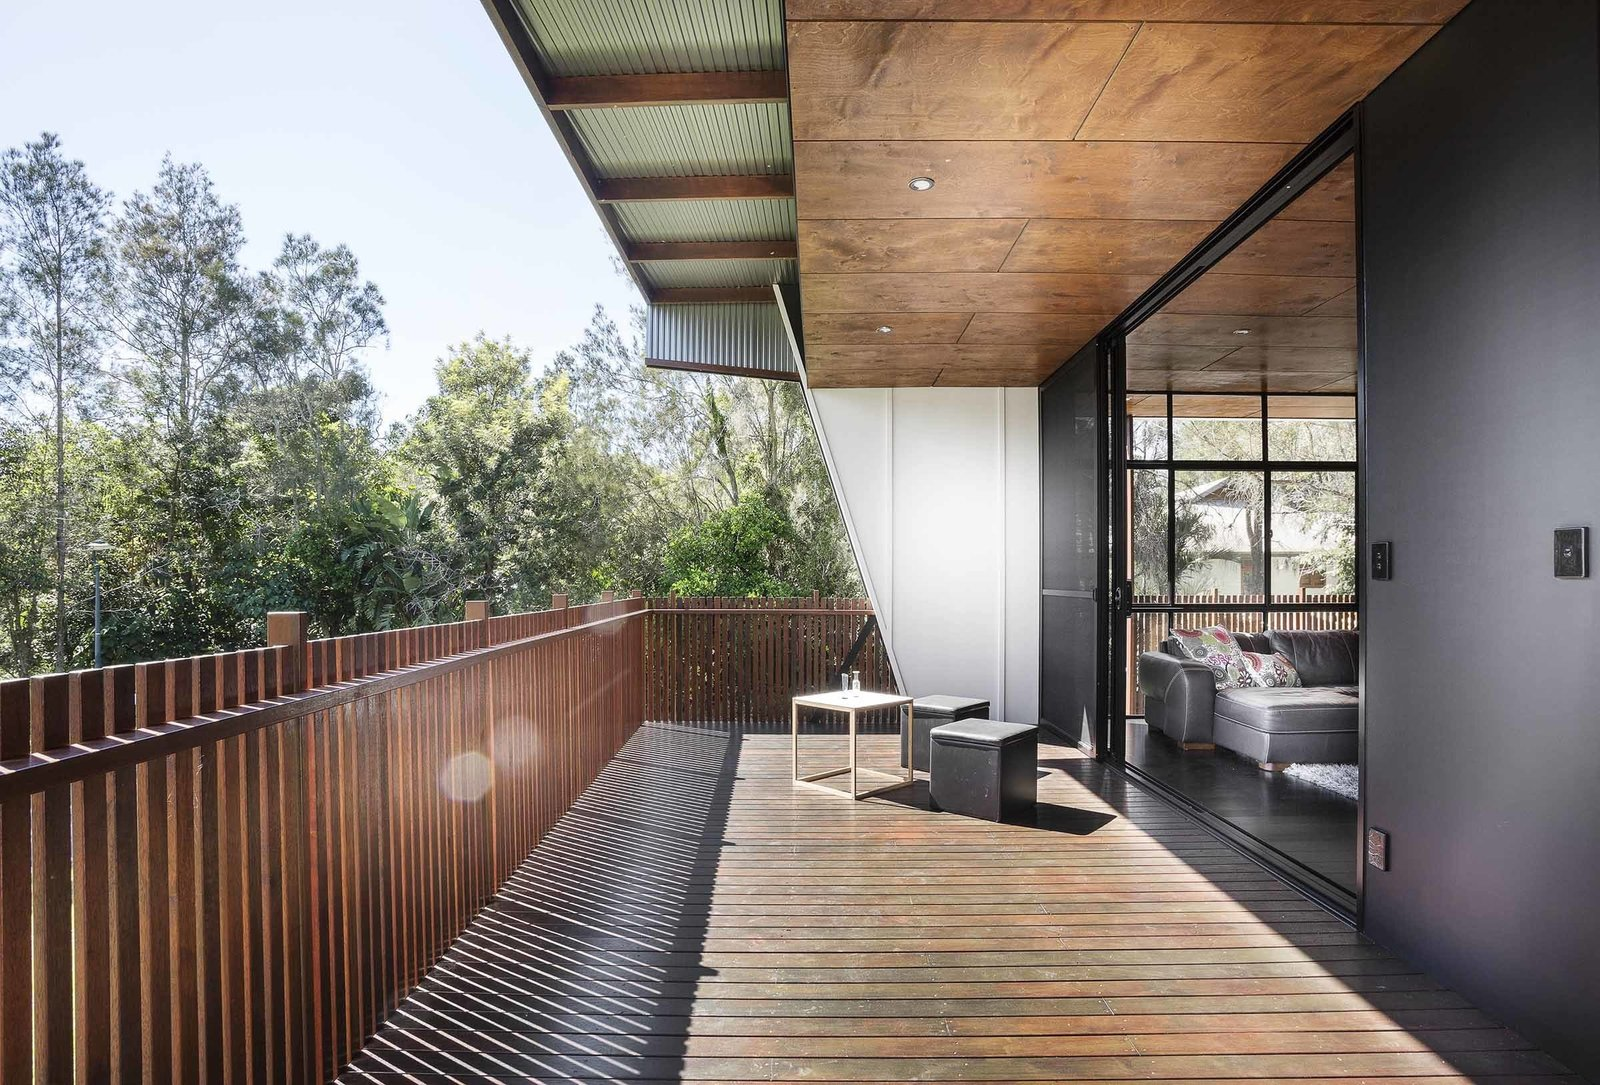 The top floor opens onto an expansive deck on the north side of the house. An entry yard on its east side provides a seamless connection to the outdoor environment, while ensuring adequate shading and screening for privacy.